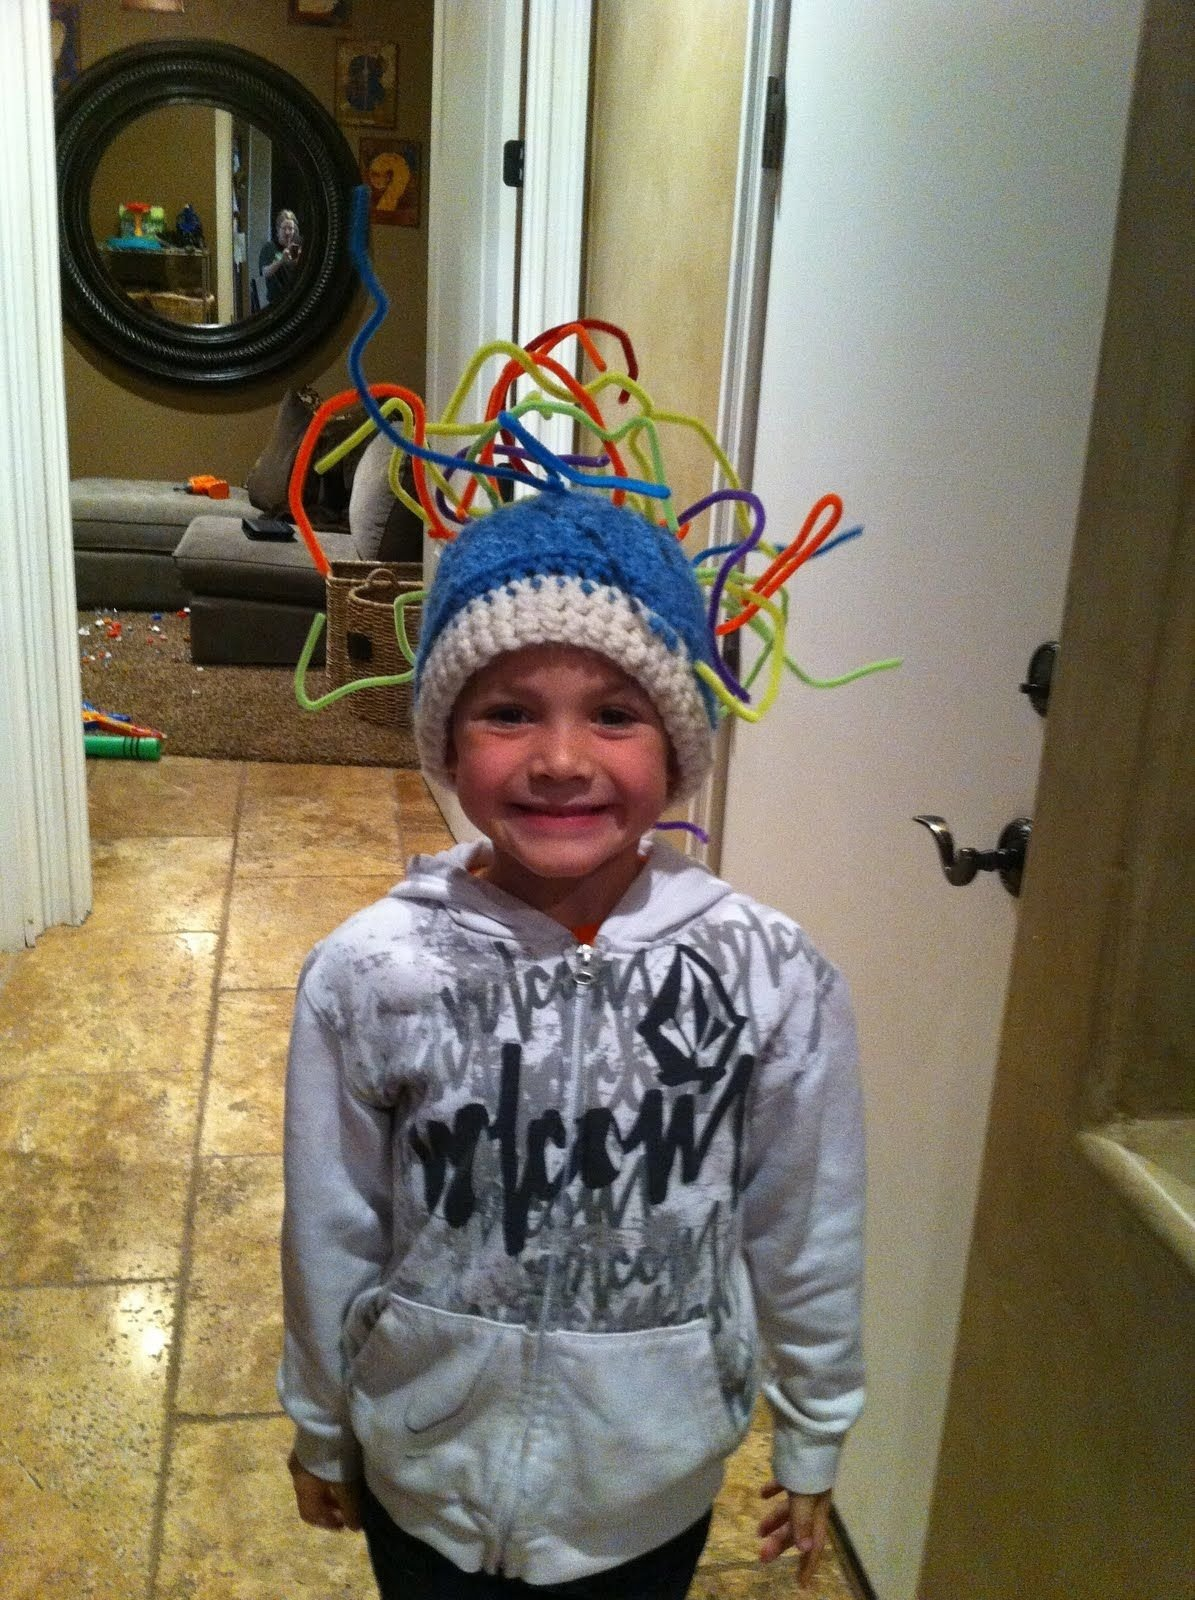 10 Great Crazy Hat Day Ideas For Kids crazy hat day for kids crew and i had fun making his hat for crazy 2 2021